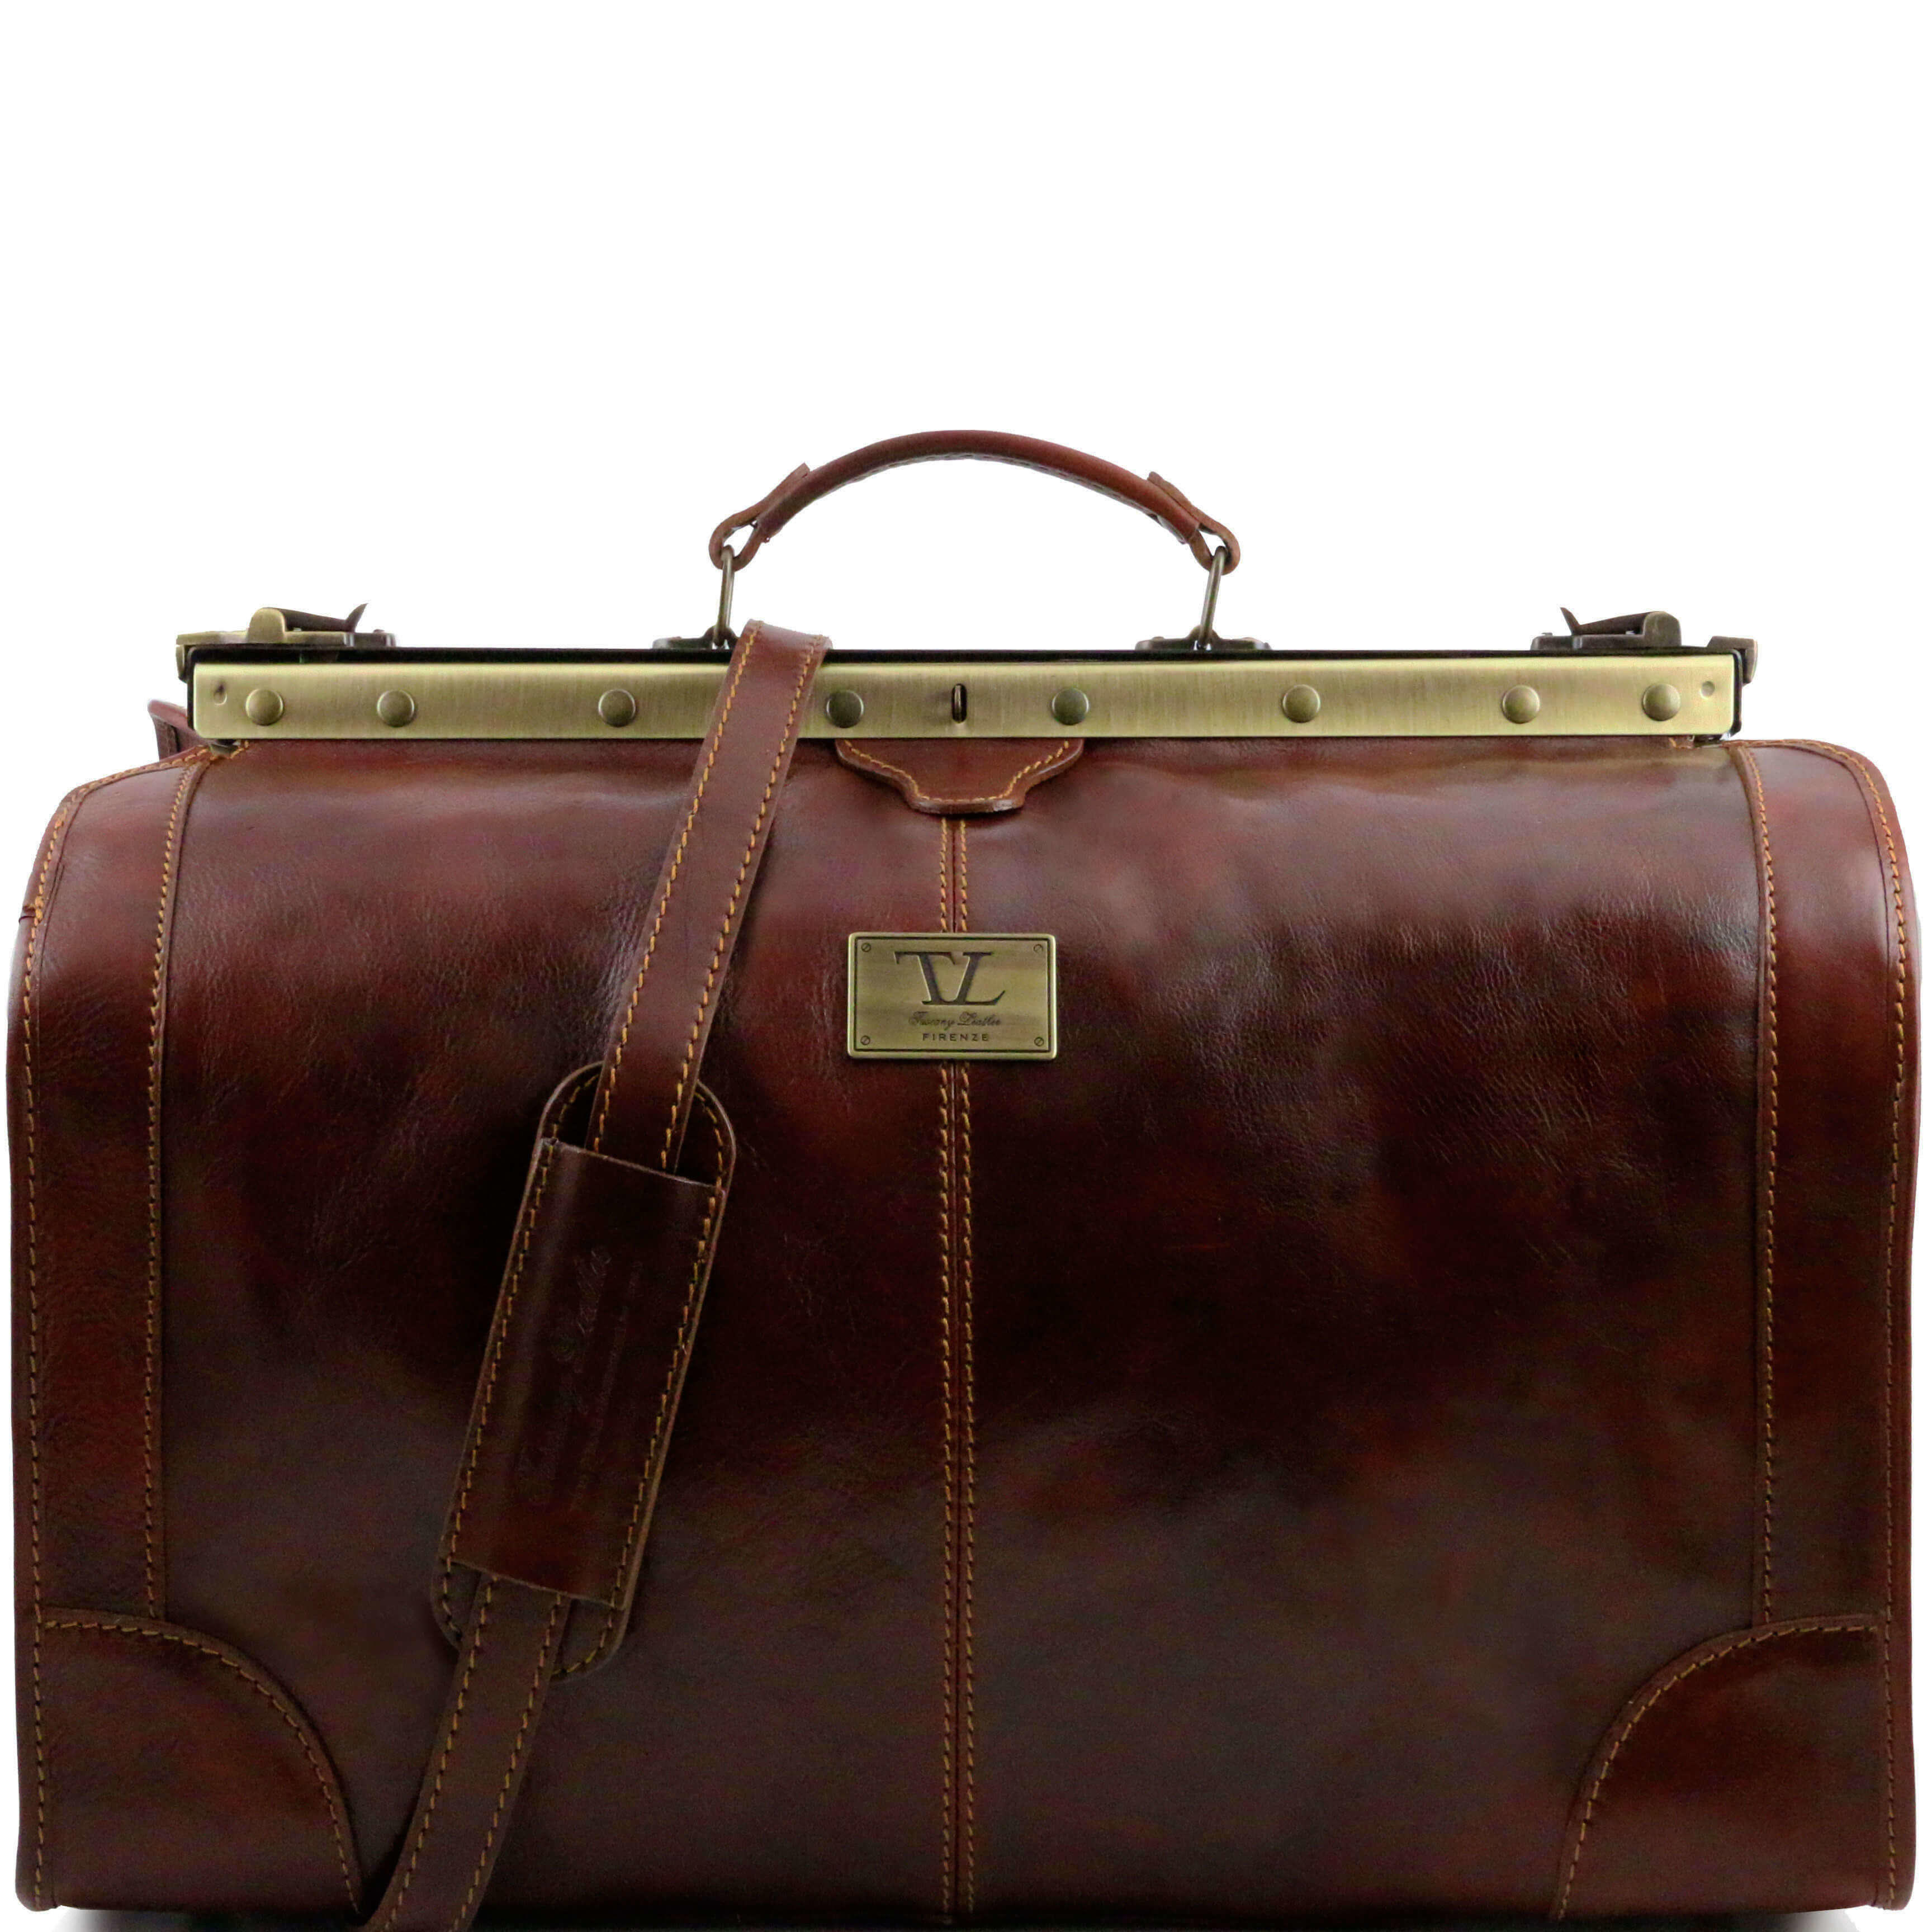 TL1022 Large Madrid Leather GladstoneTravel - Holdall - Luggage